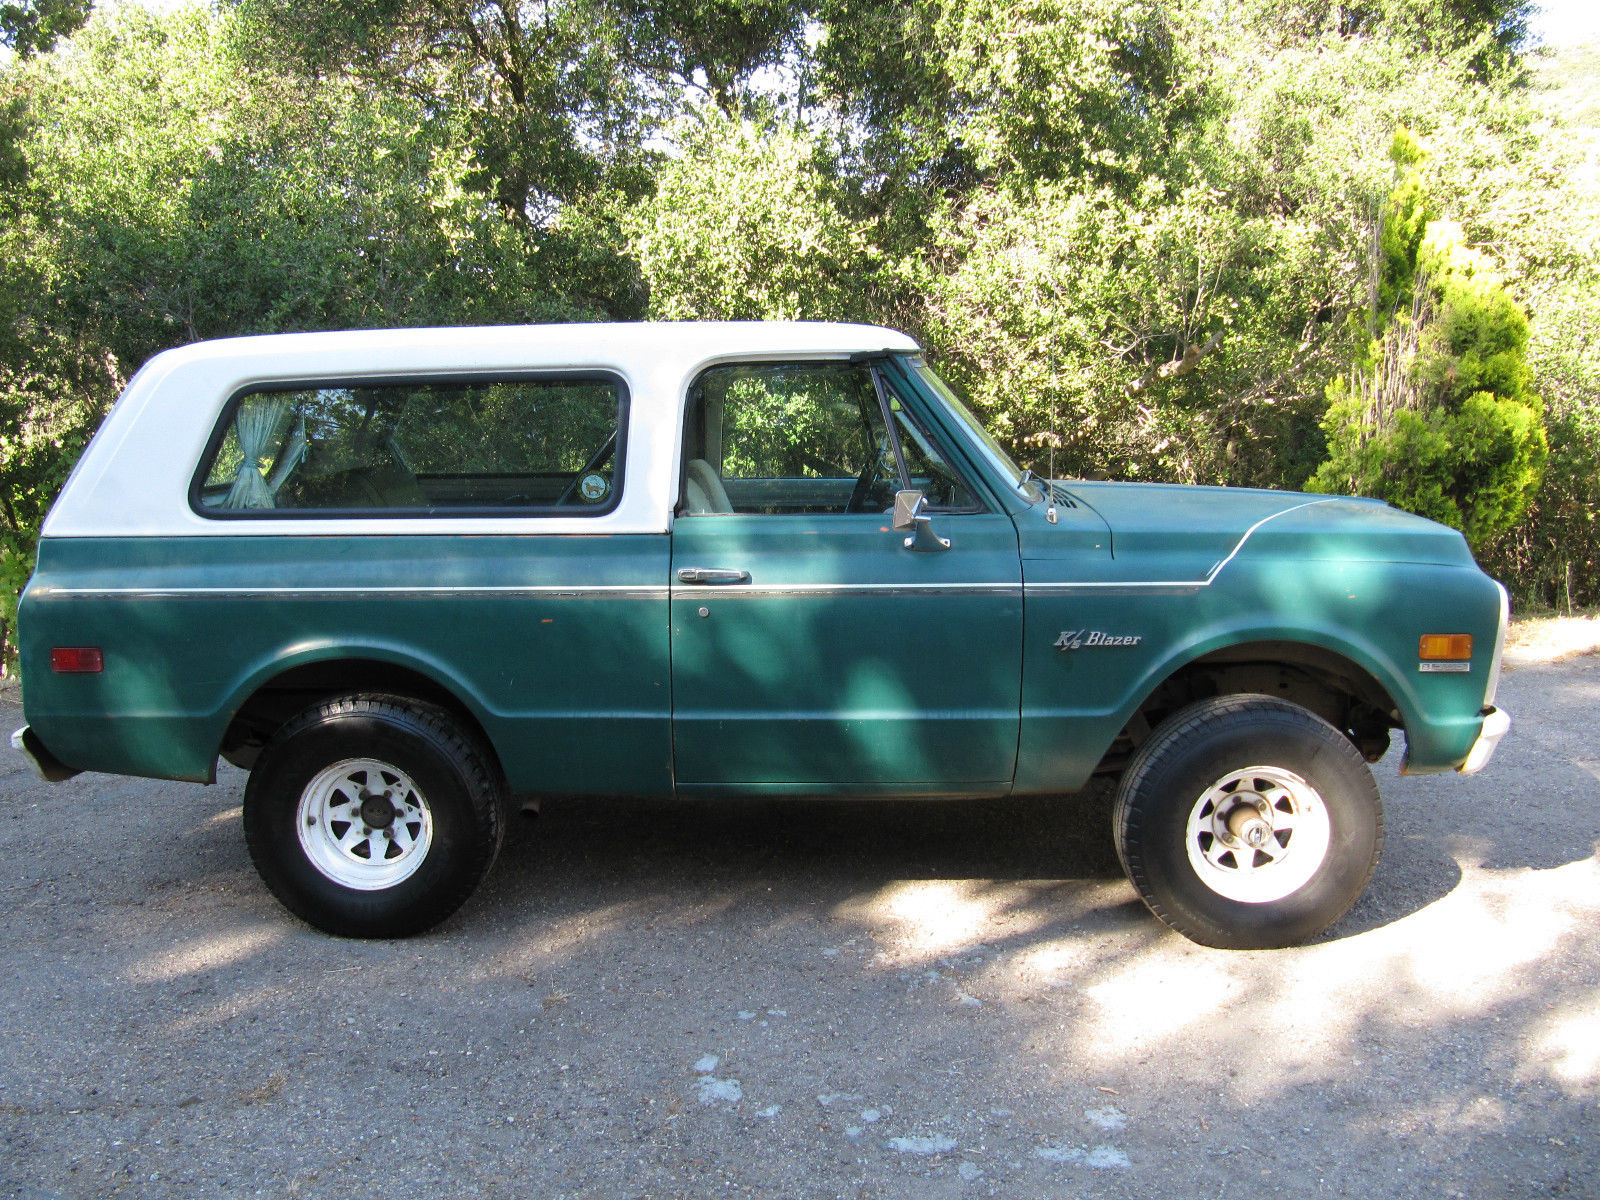 1971 Chevy Blazer For Sale >> 1971 Chevrolet Blazer K5 for sale